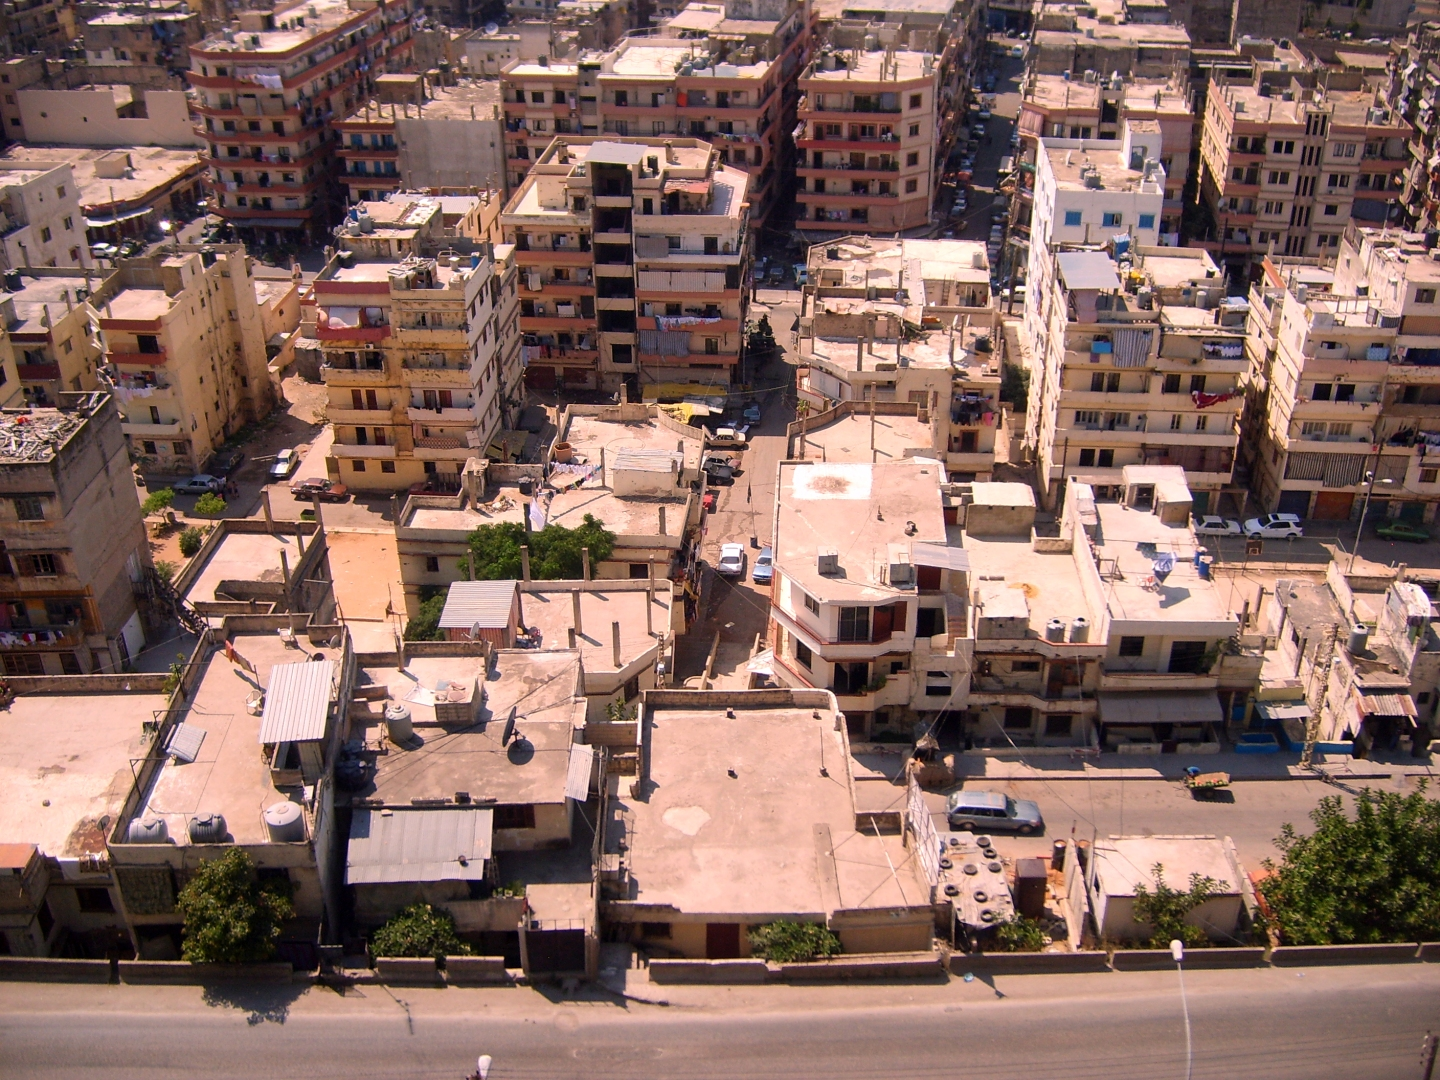 Bab al-Tabbaneh district of Tripoli, Lebanon, seen from Jabal Mohsen.